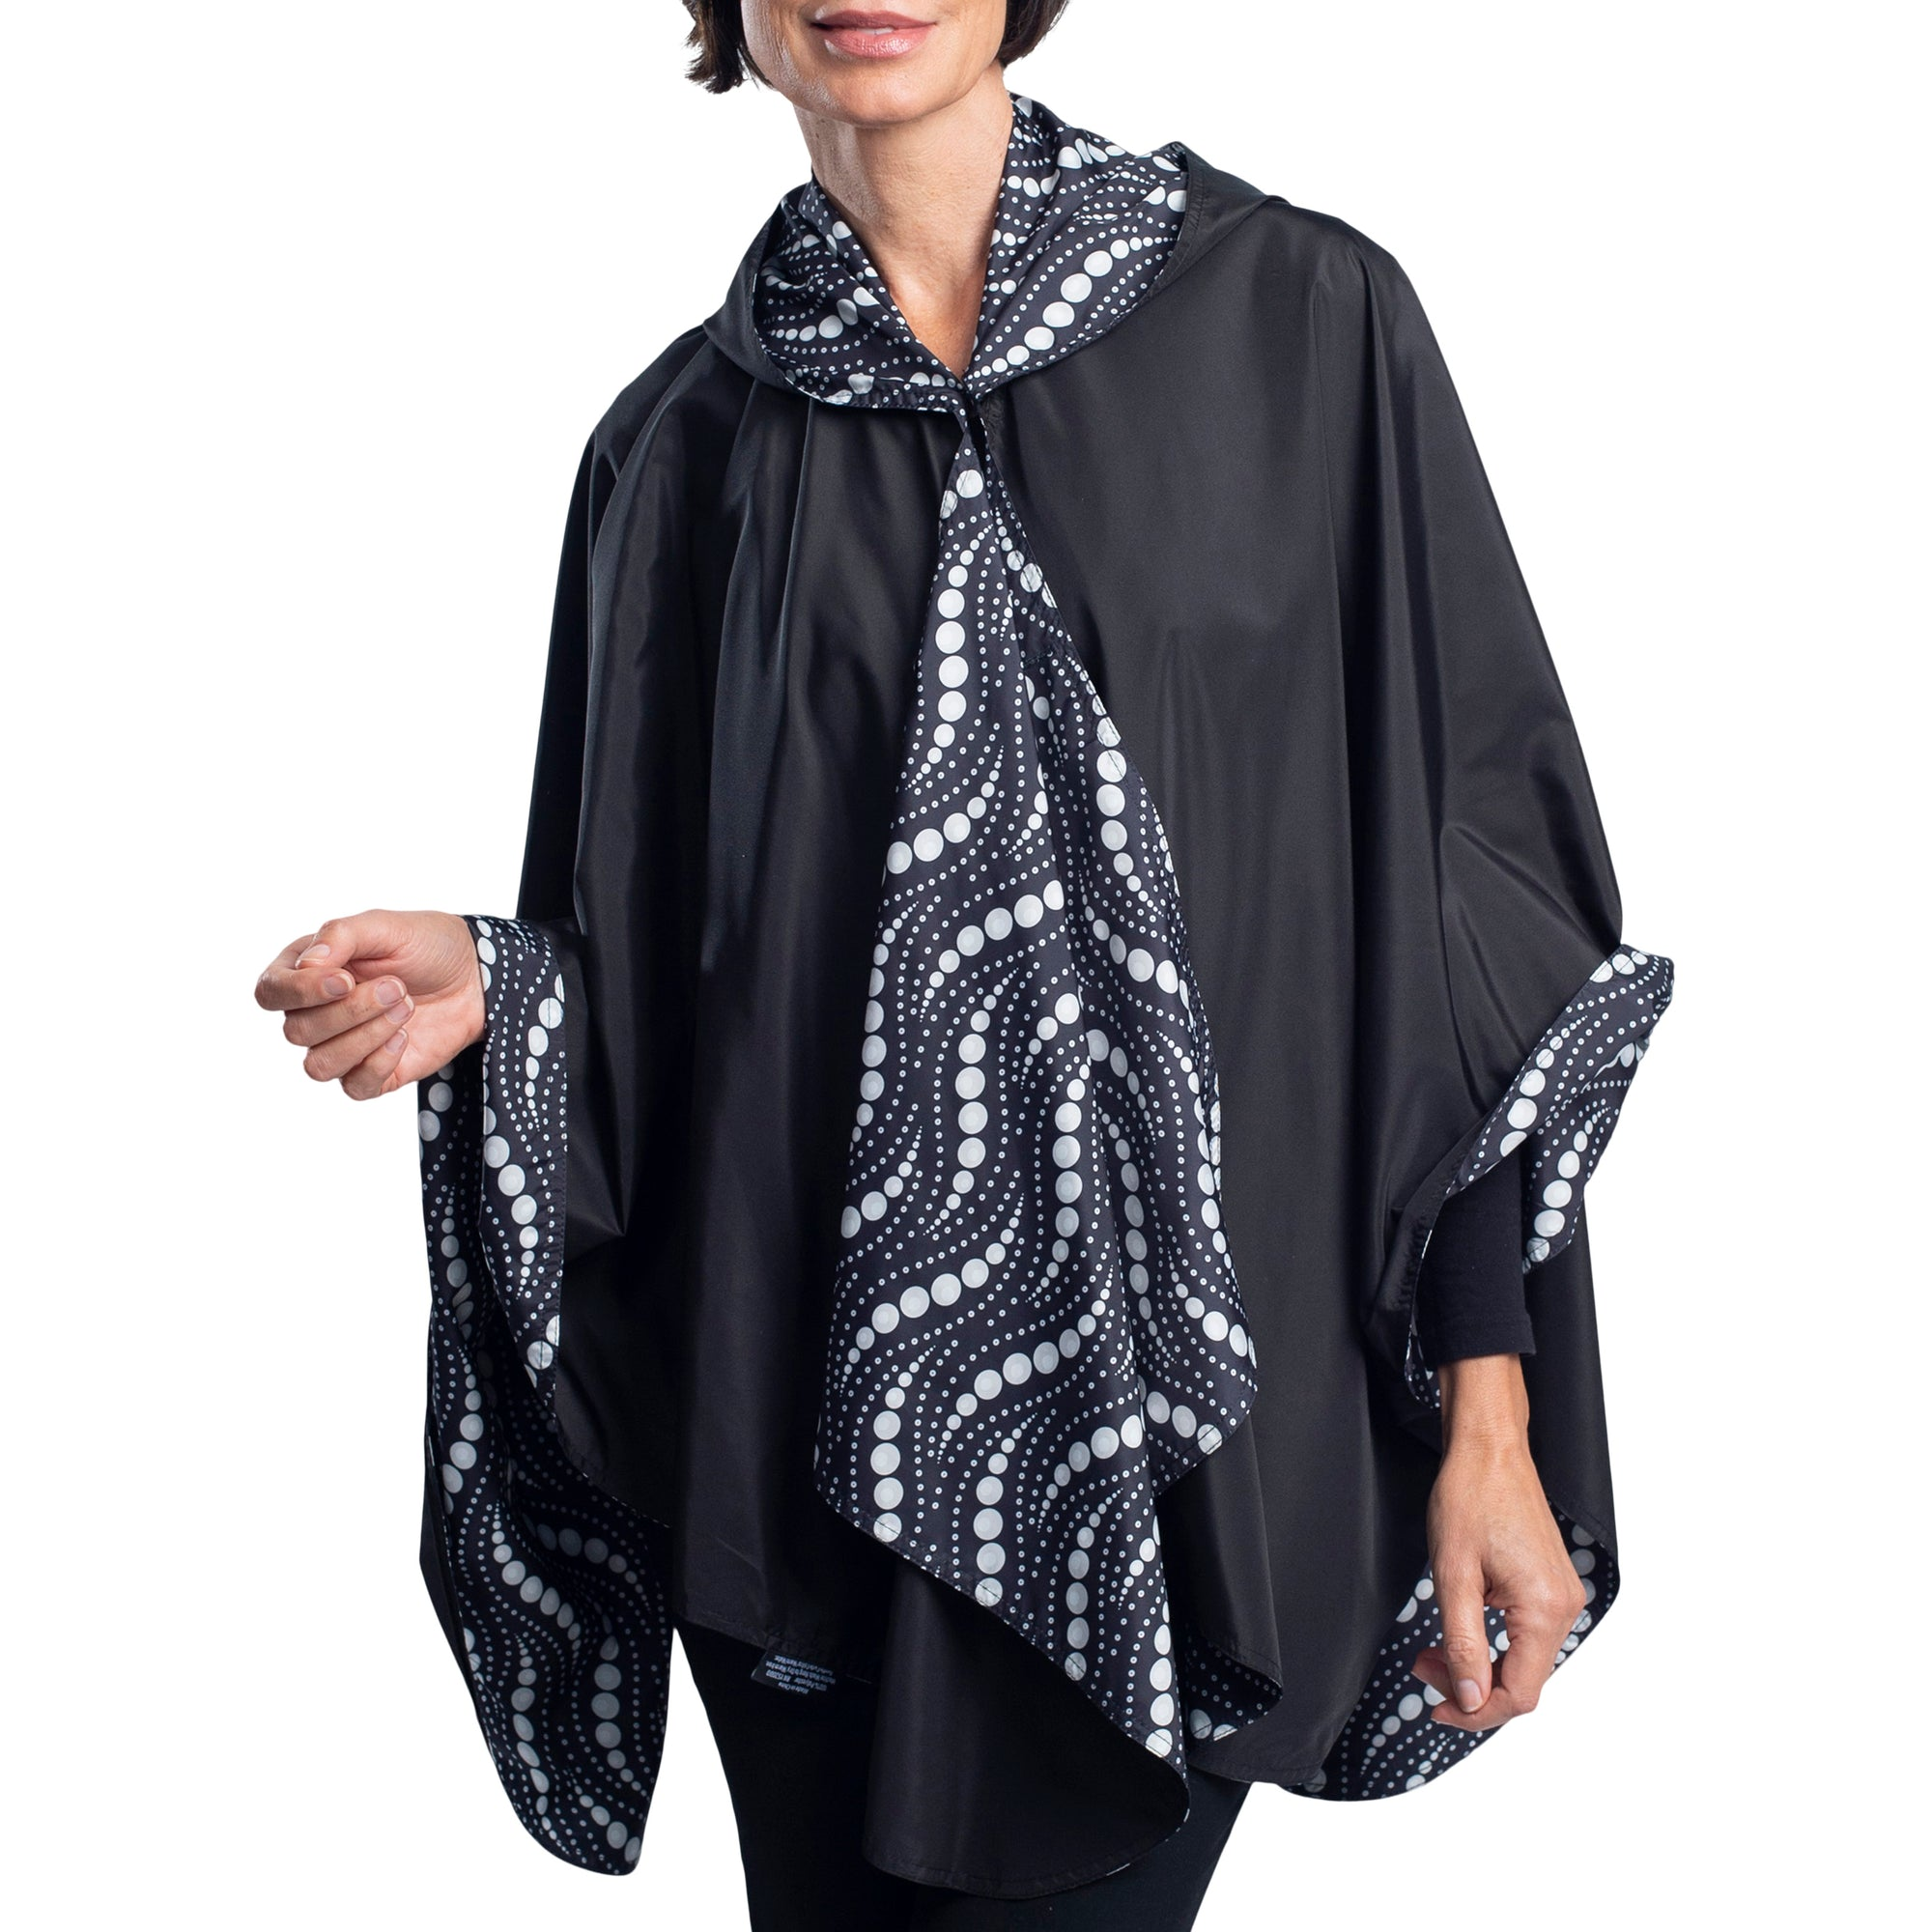 Women wearing a Black/Wavy Pearls Reversible RainCaper travel cape with the Black side out, revealing the Wavy Pearls print at the lapels and cuffs